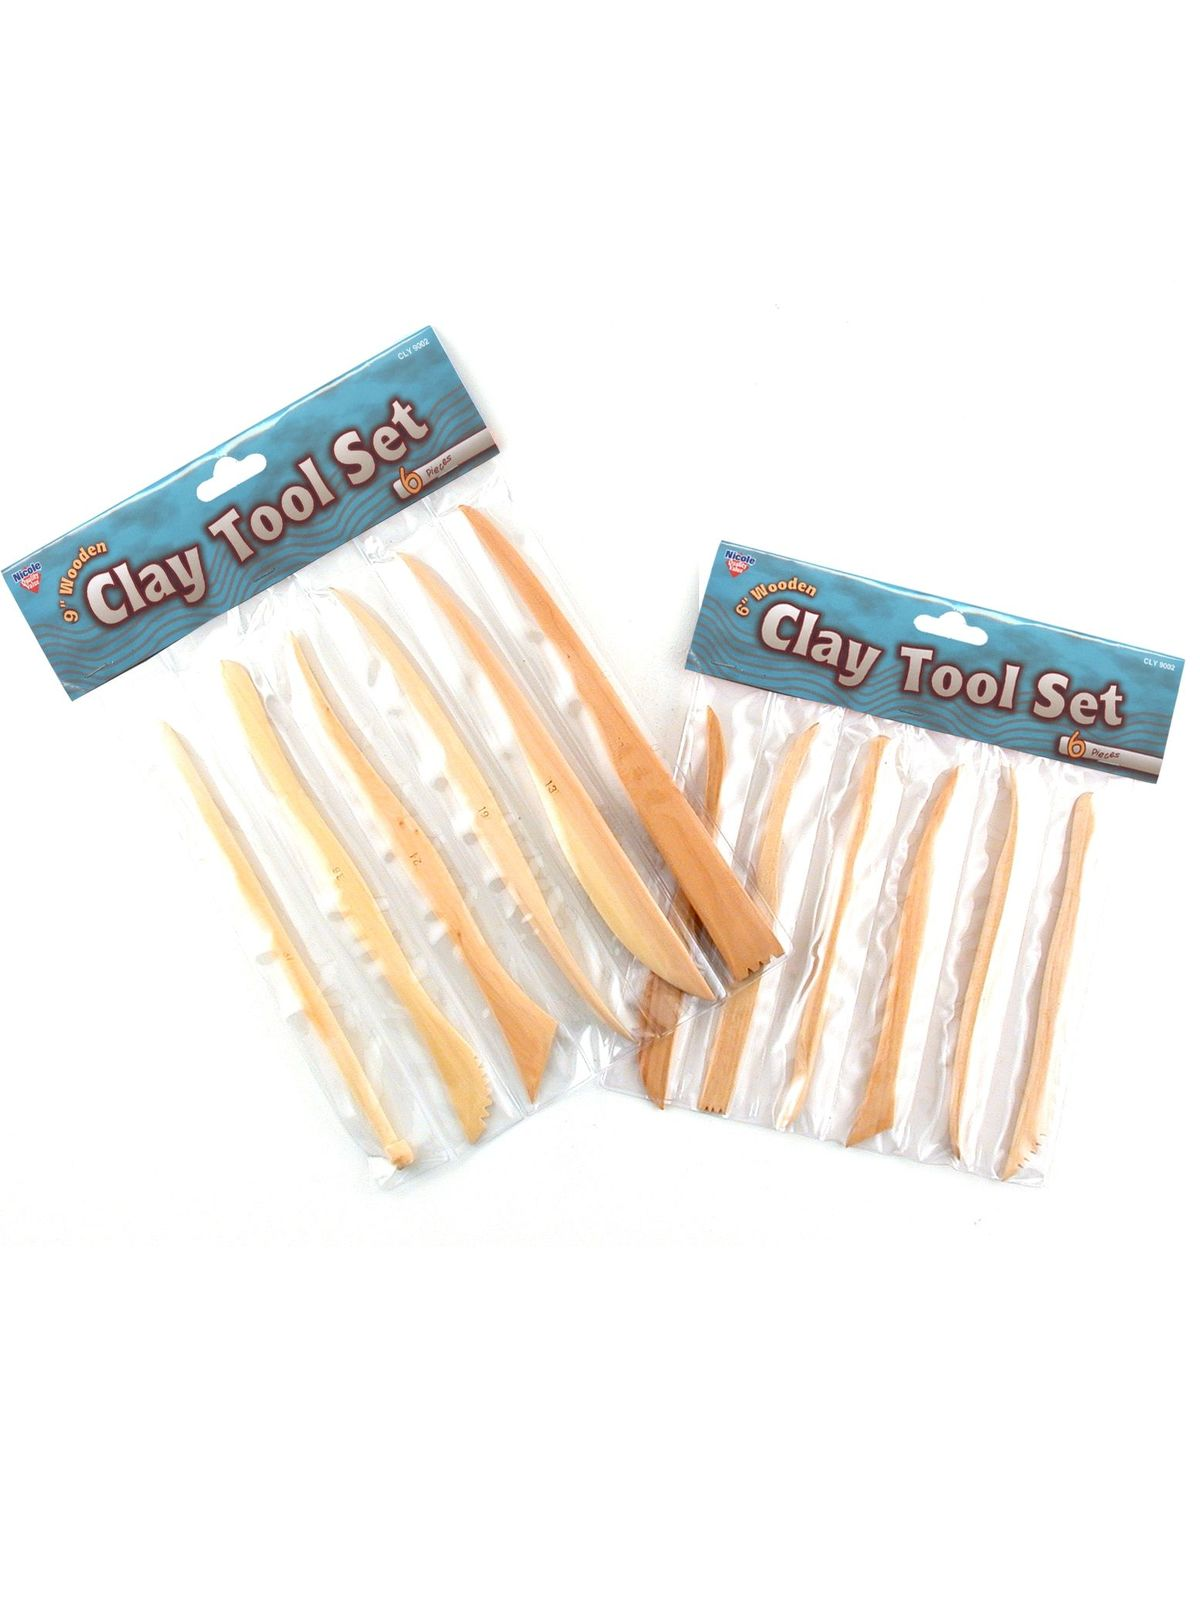 Wooden Clay Tool Sets